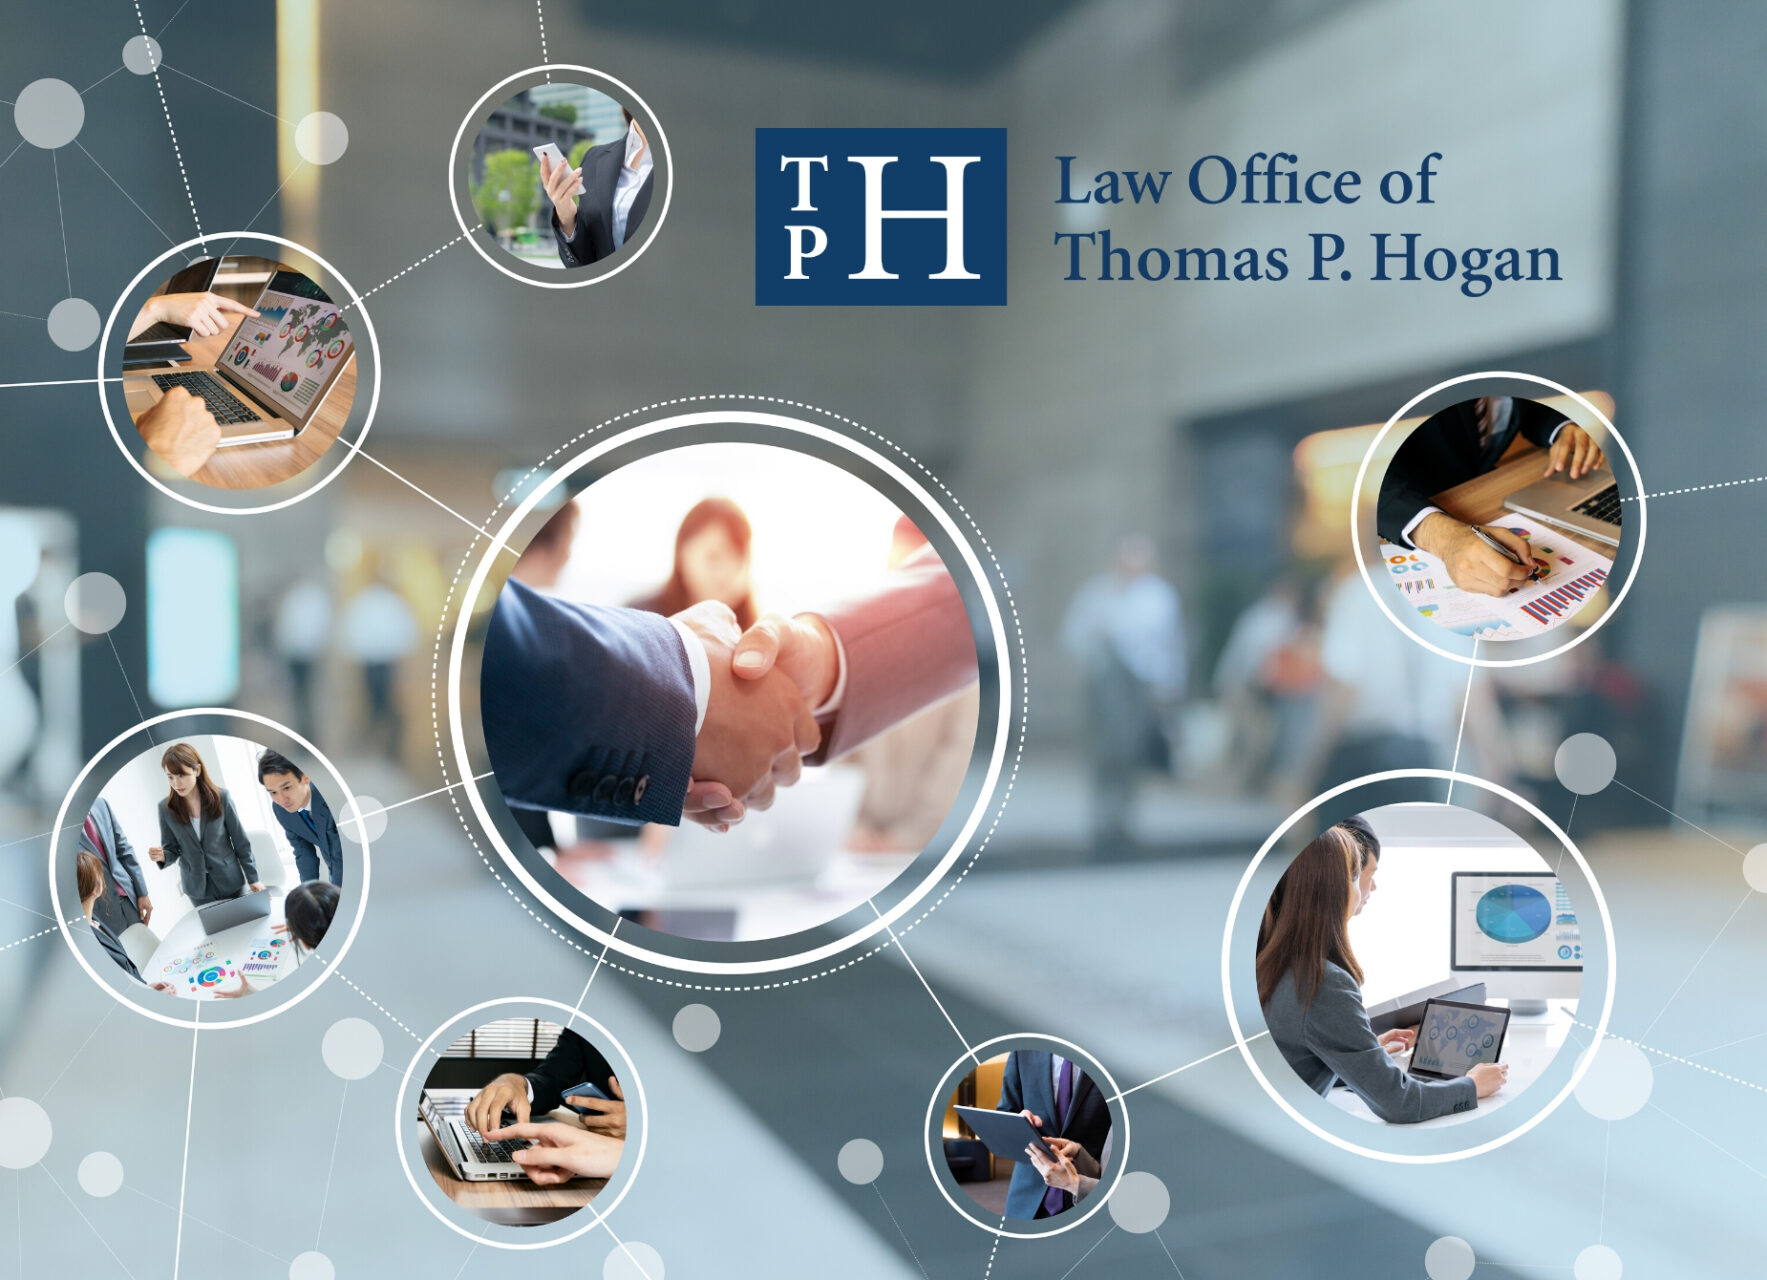 Law Office of Thomas P. Hogan Covid 19 and business support